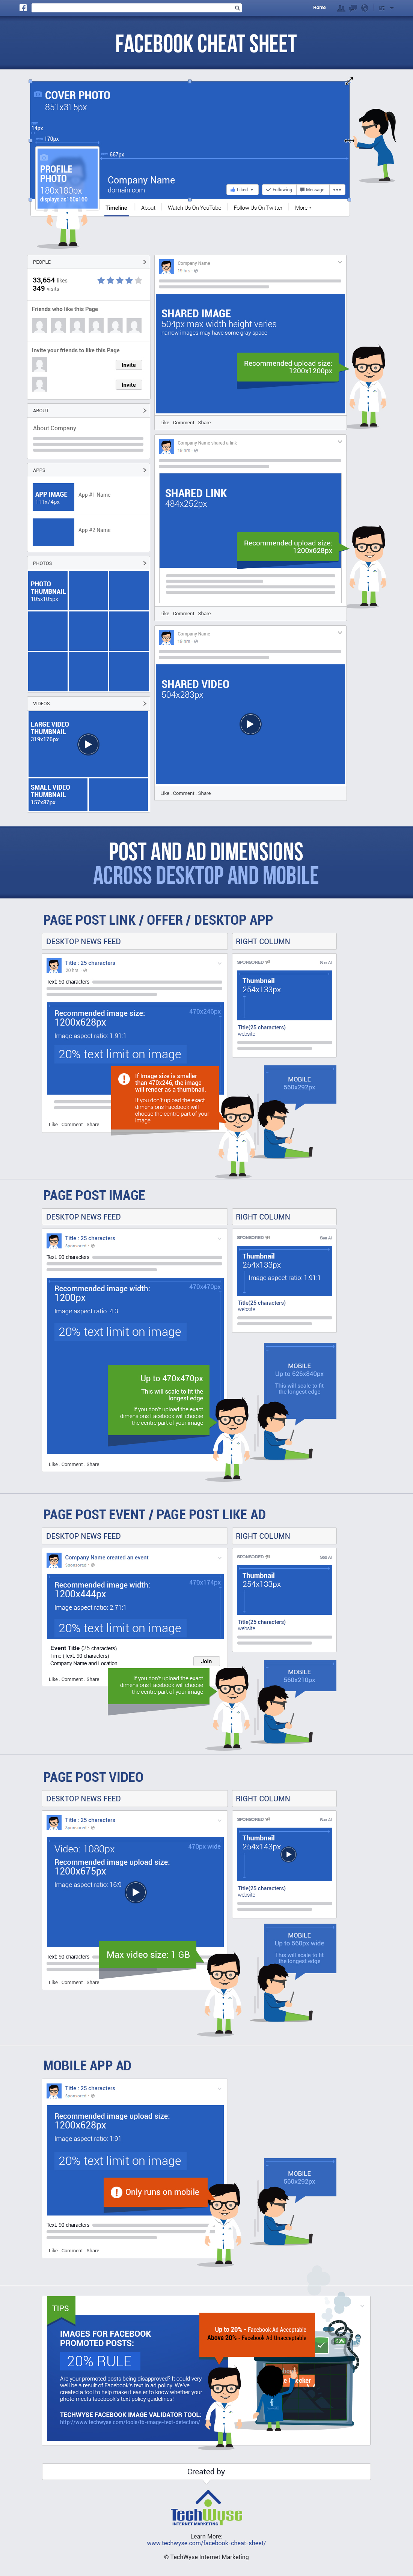 facebook-cheat-sheet-size-and-dimensions-enlarge